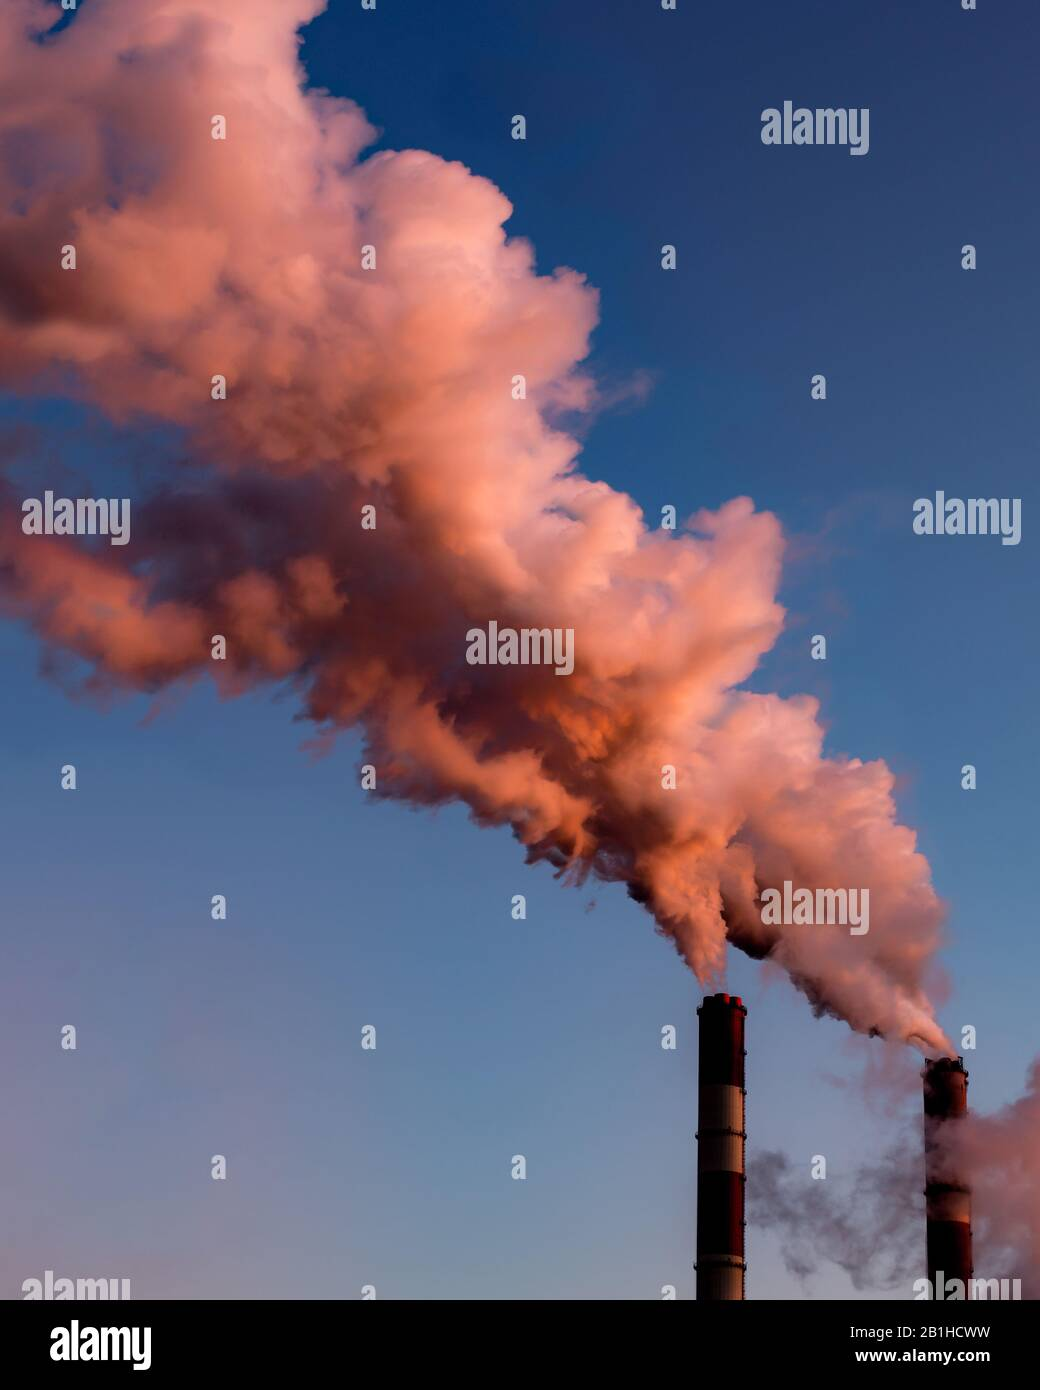 Pipes of a boiler room with thick pink smoke at sunset. Beautiful pink steam at dusk, natural tinted lighting. Air pollution, environmental problems, Stock Photo